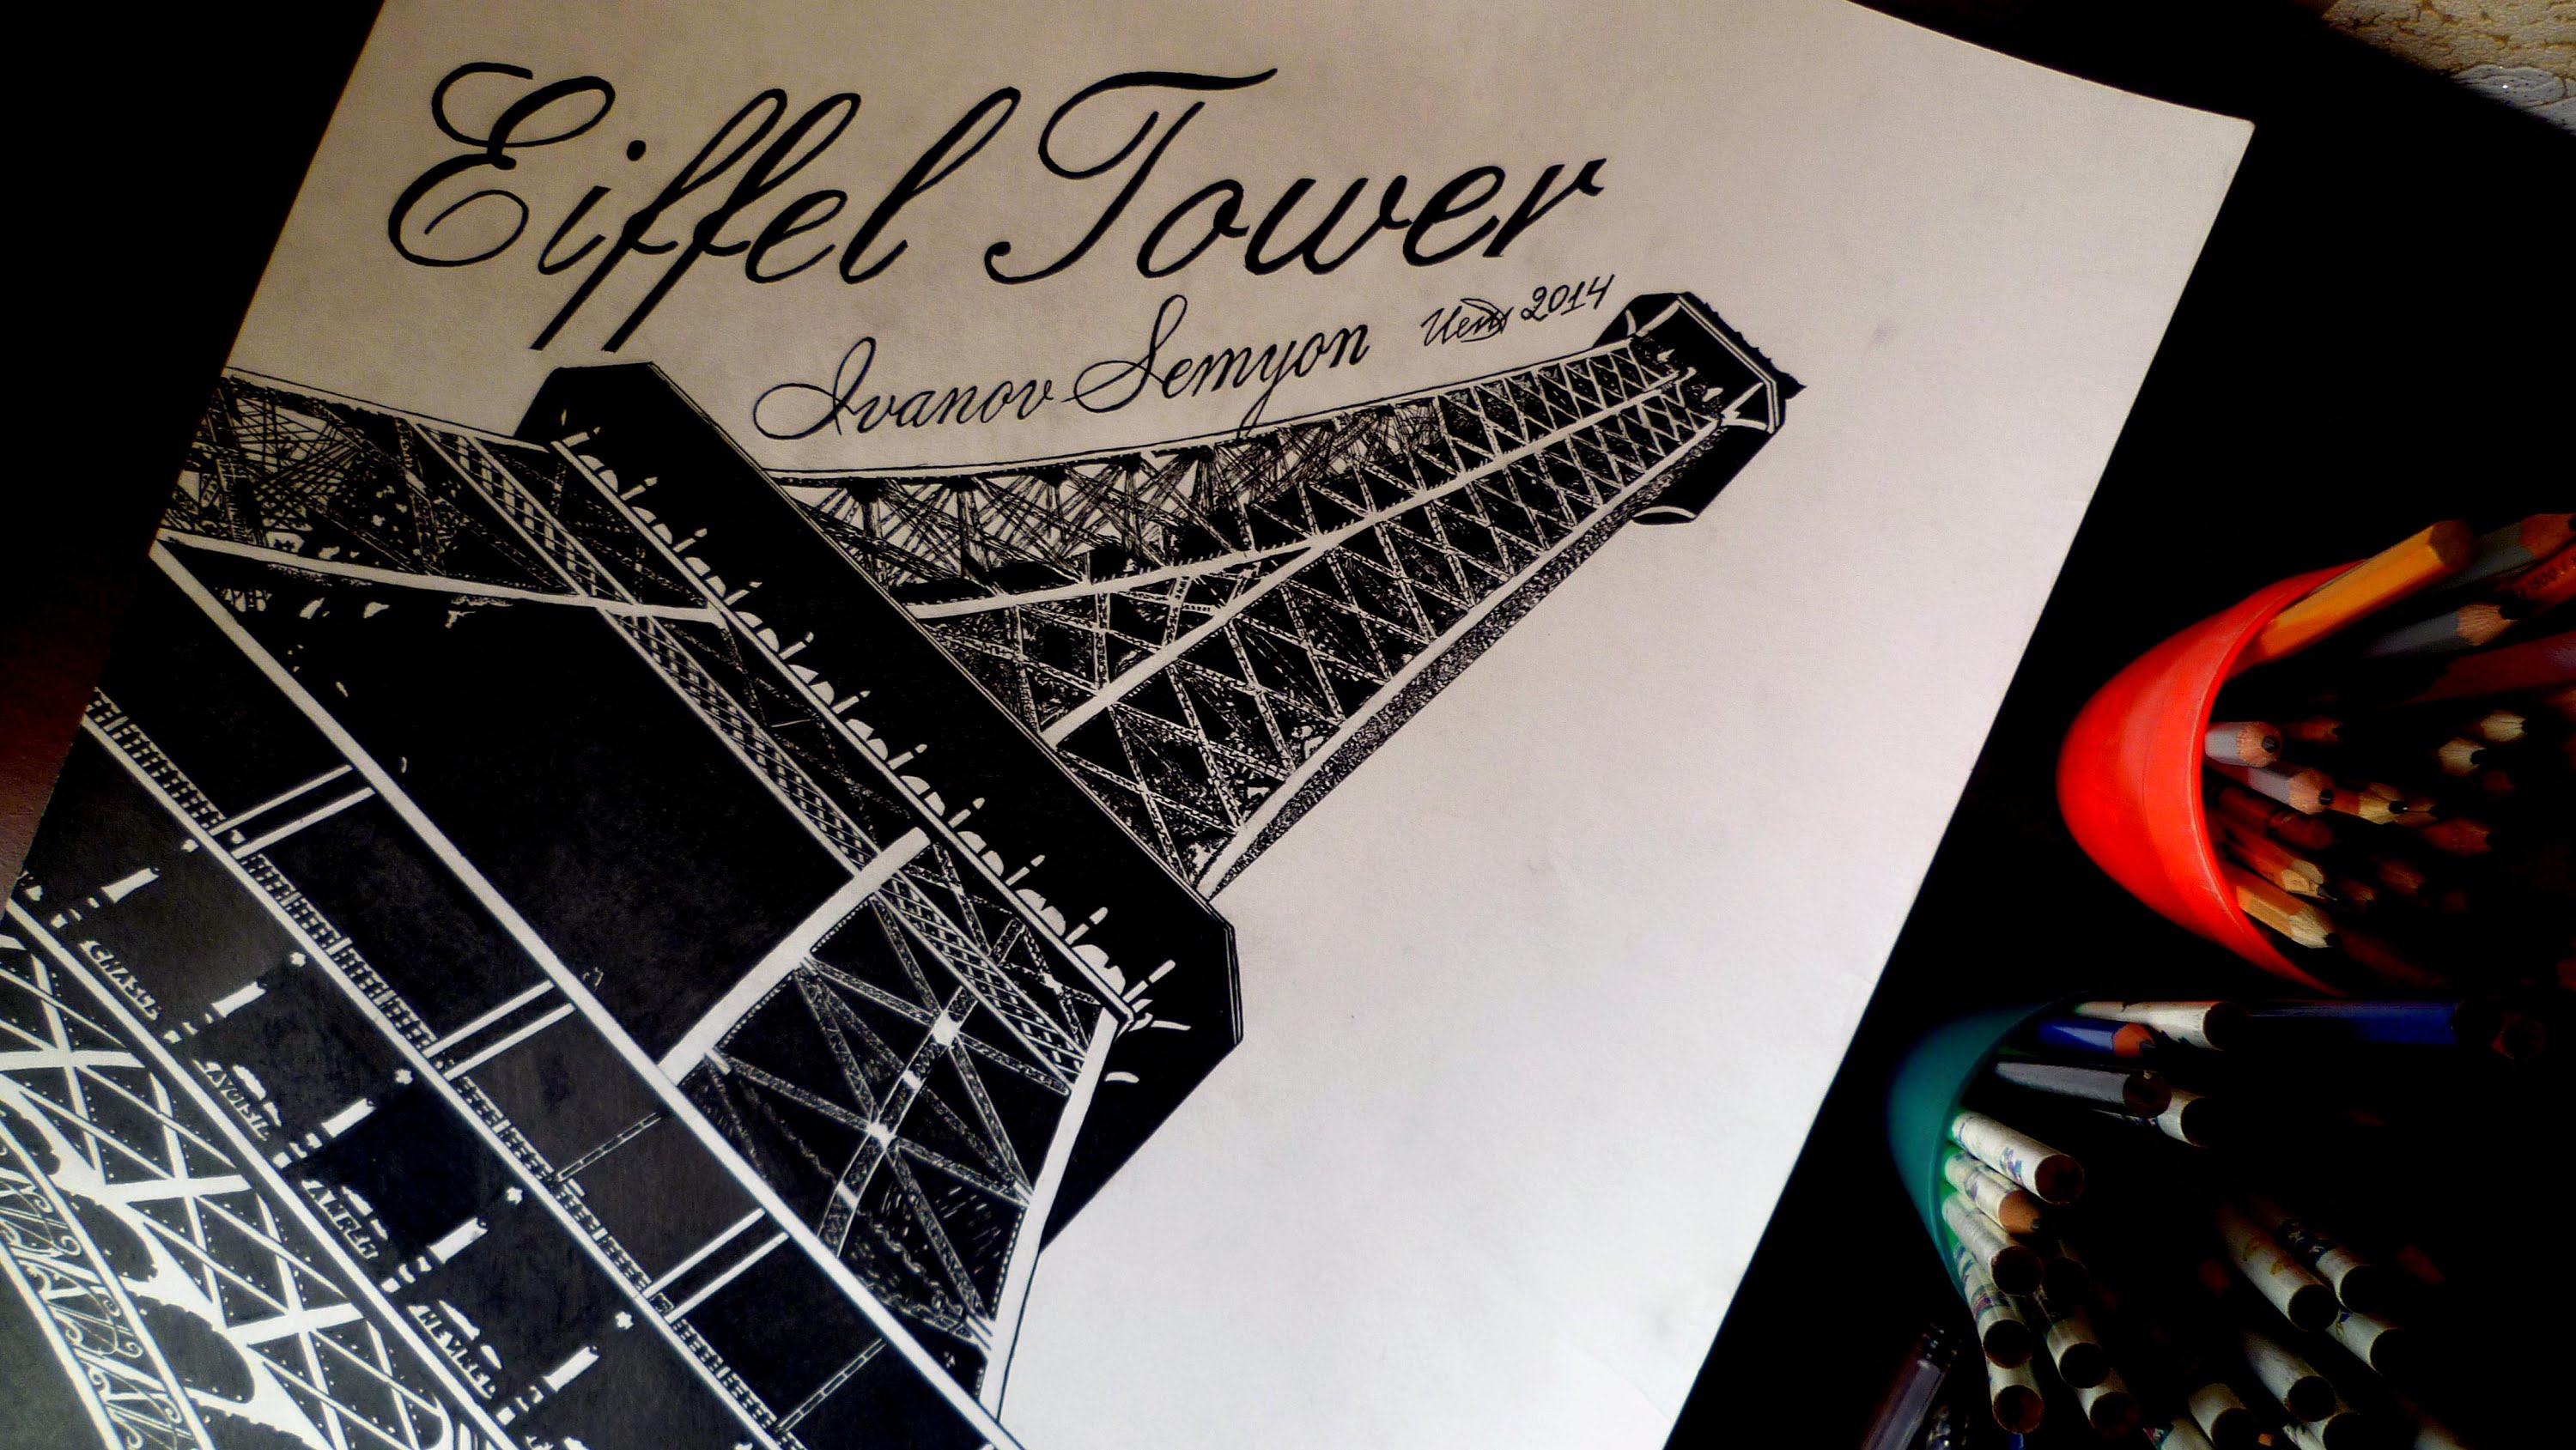 3000x1689 Eiffel Tower. Paris, France Drawing Isp 2014